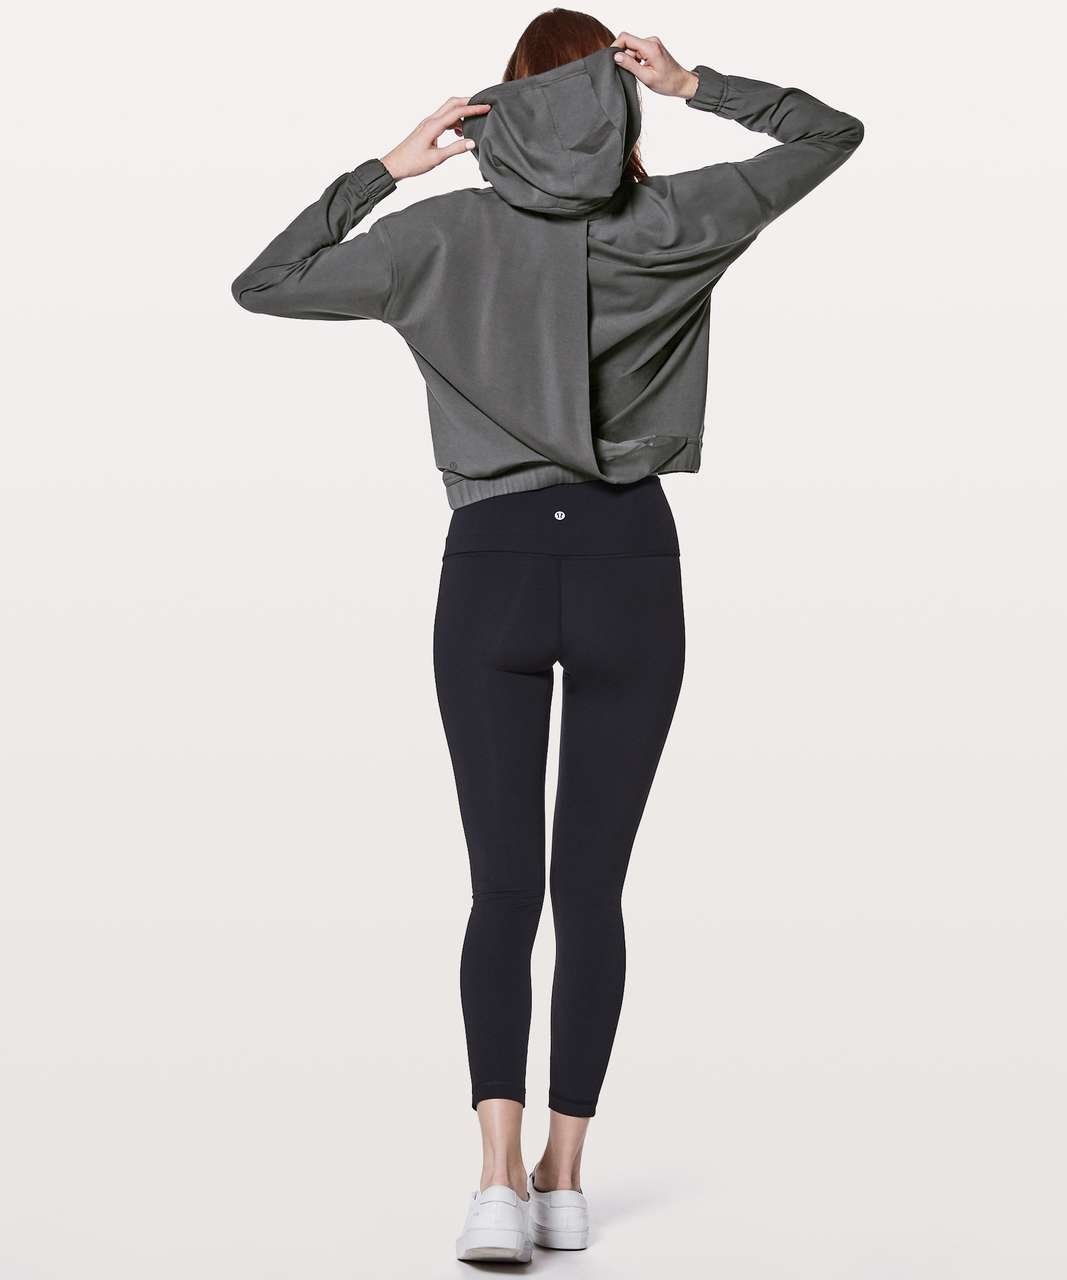 Lululemon Twisted & Tucked Pullover - Dark Shadow